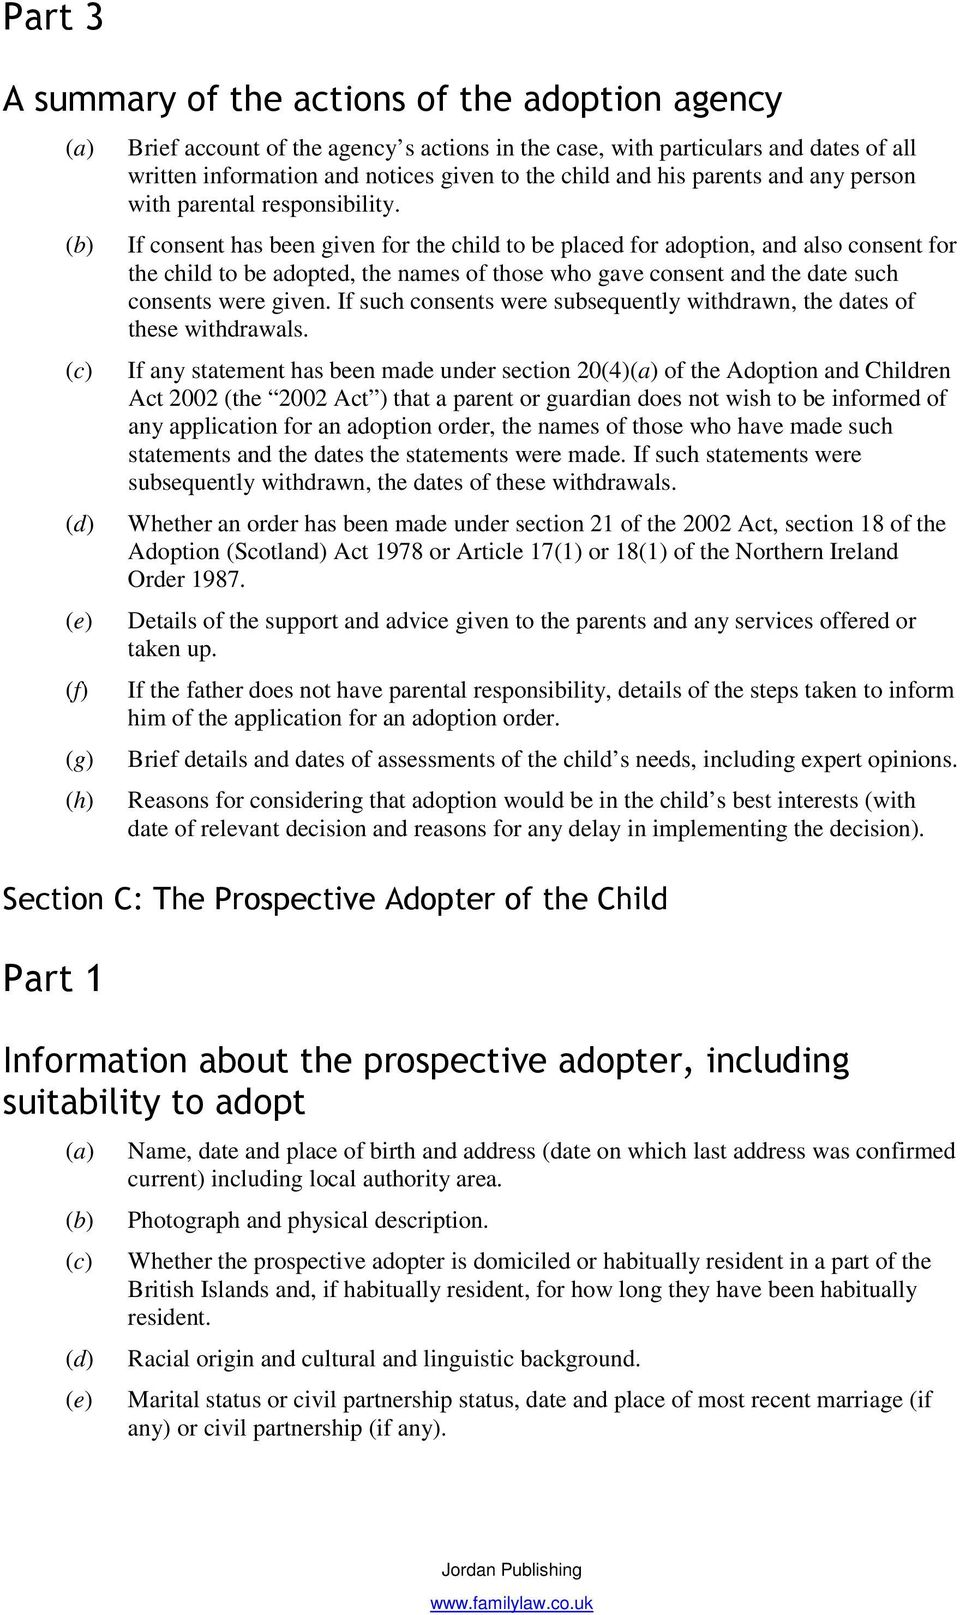 If consent has been given for the child to be placed for adoption, and also consent for the child to be adopted, the names of those who gave consent and the date such consents were given.